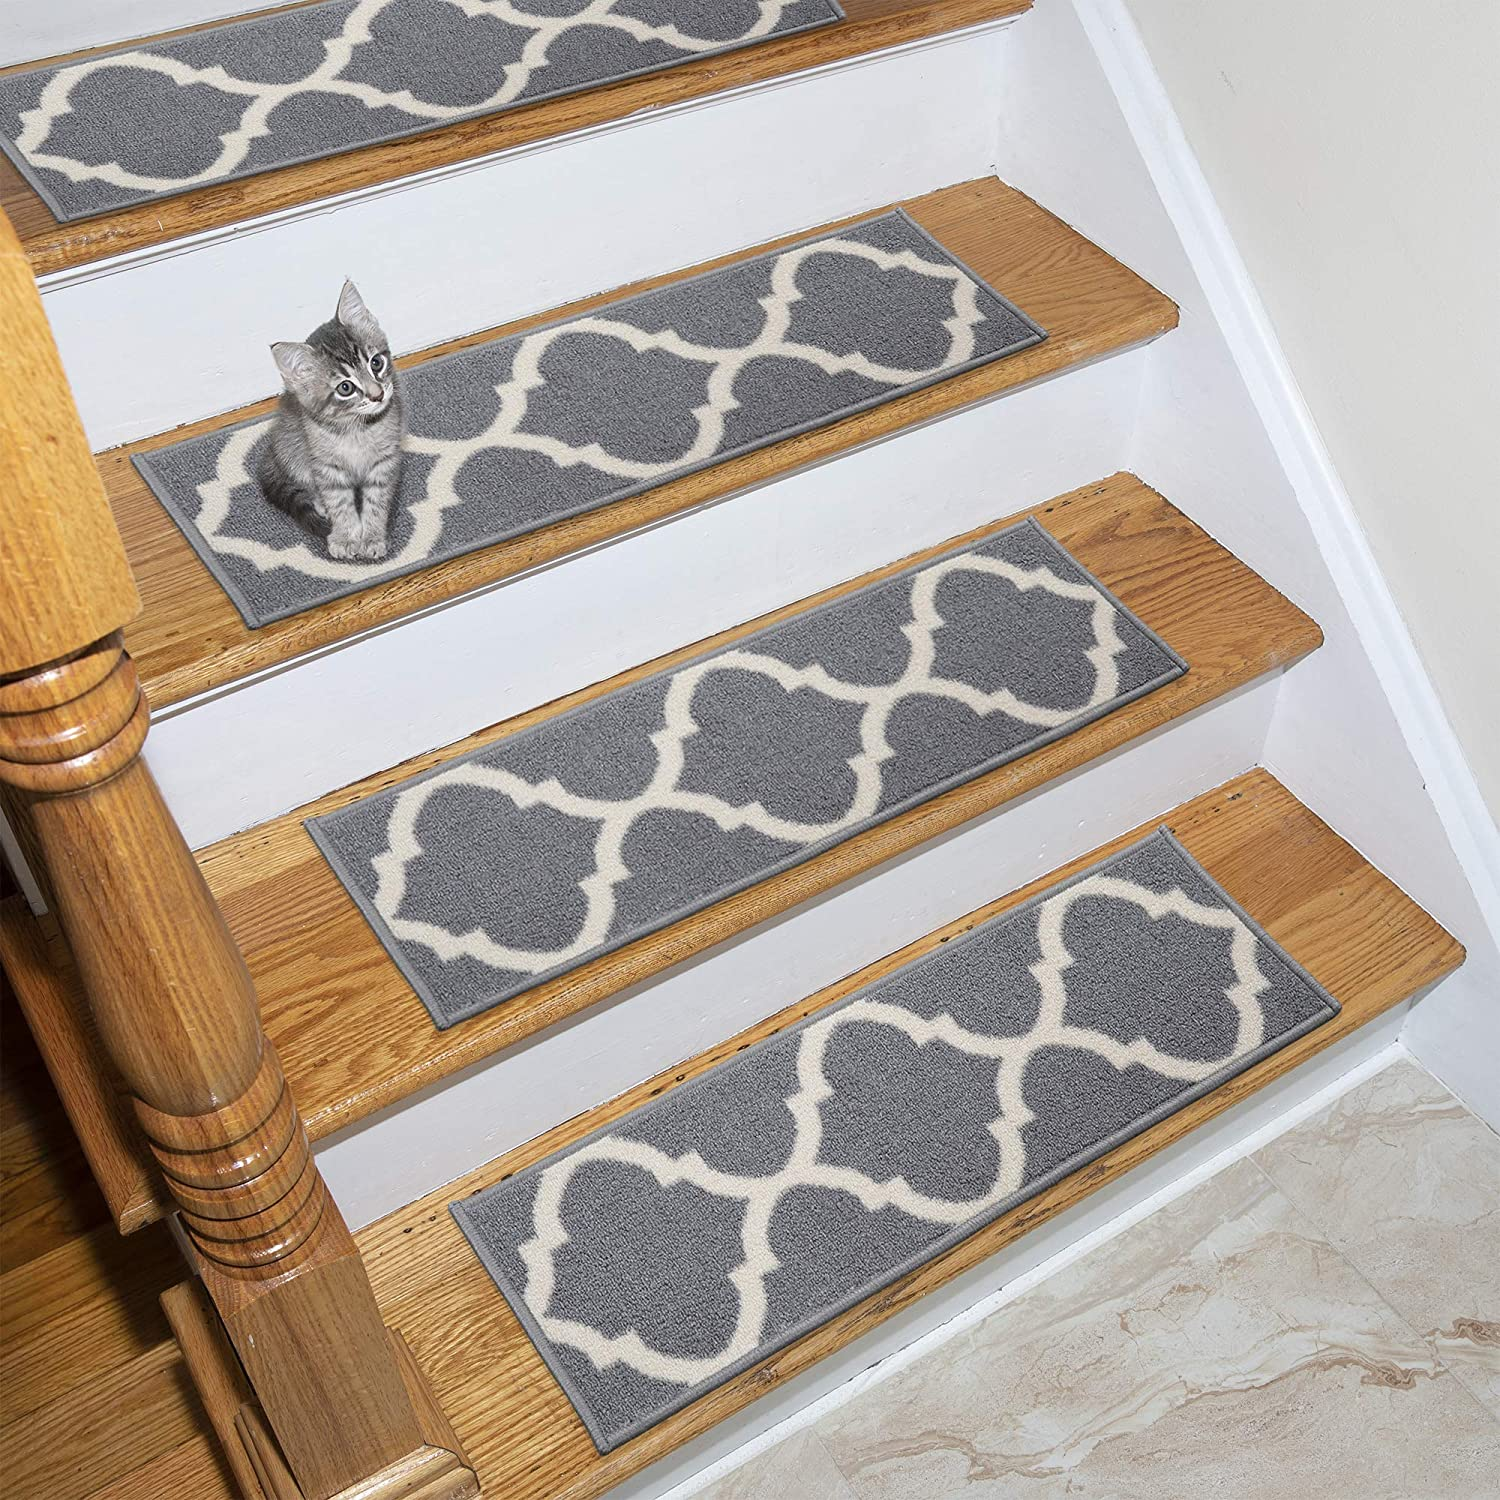 Ottomanson Ottohome Collection Stair Tread, 8.5 X 26 Pack of 7, Gray OTH3033-7